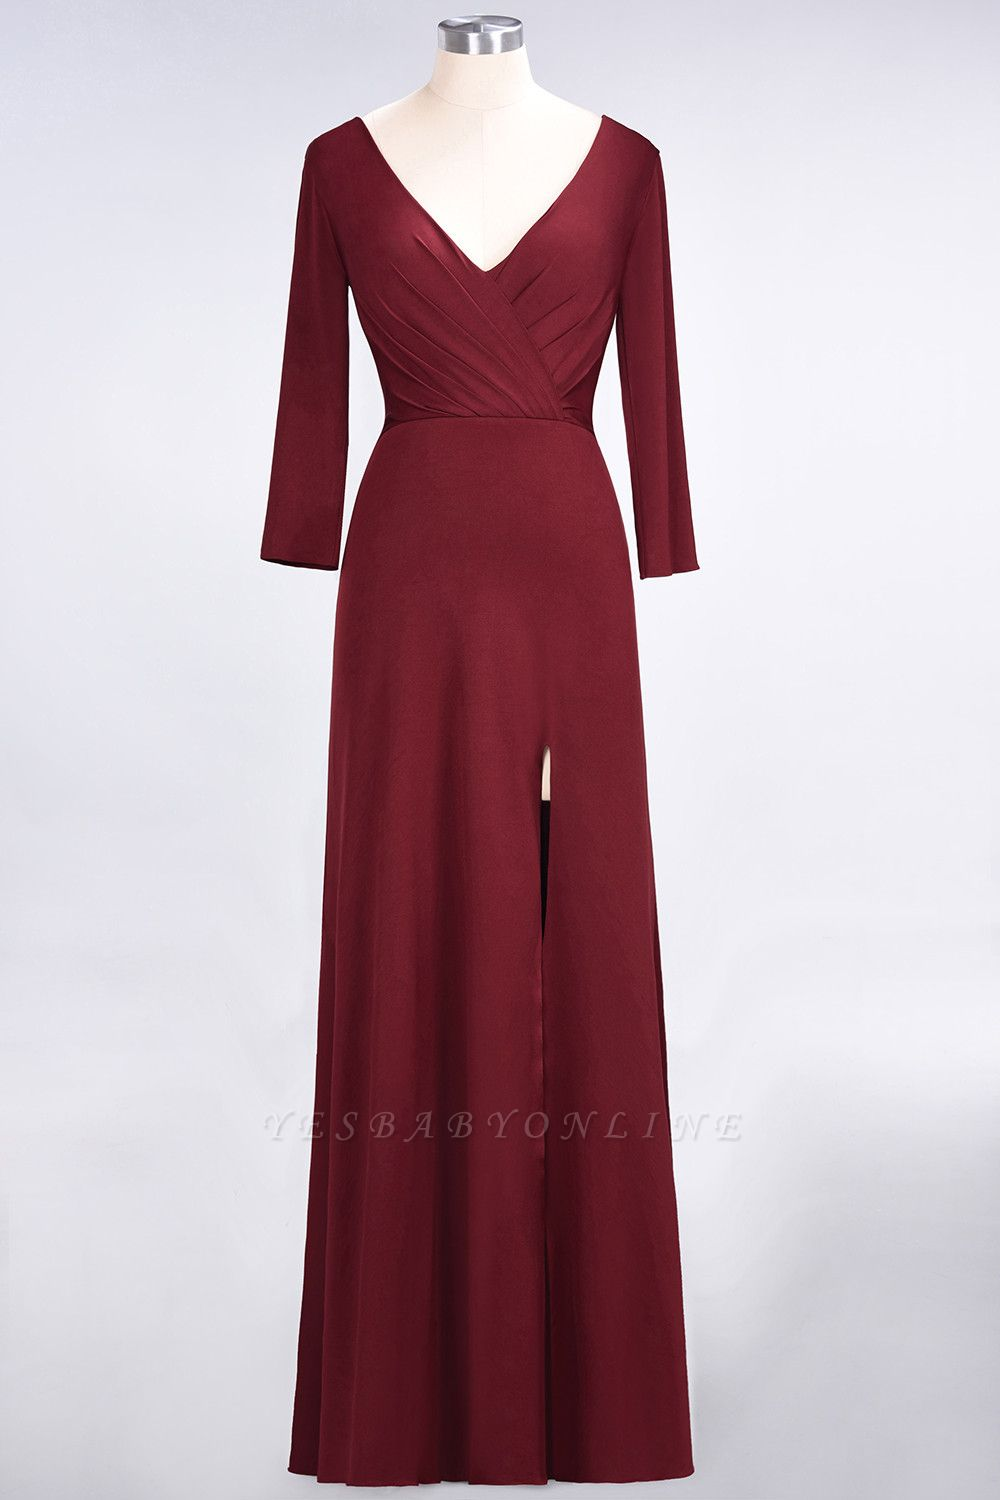 A-Line V-Neck Long-Sleeves Side-Slit Floor-Length Spandex Bridesmaid Dress with Ruffles